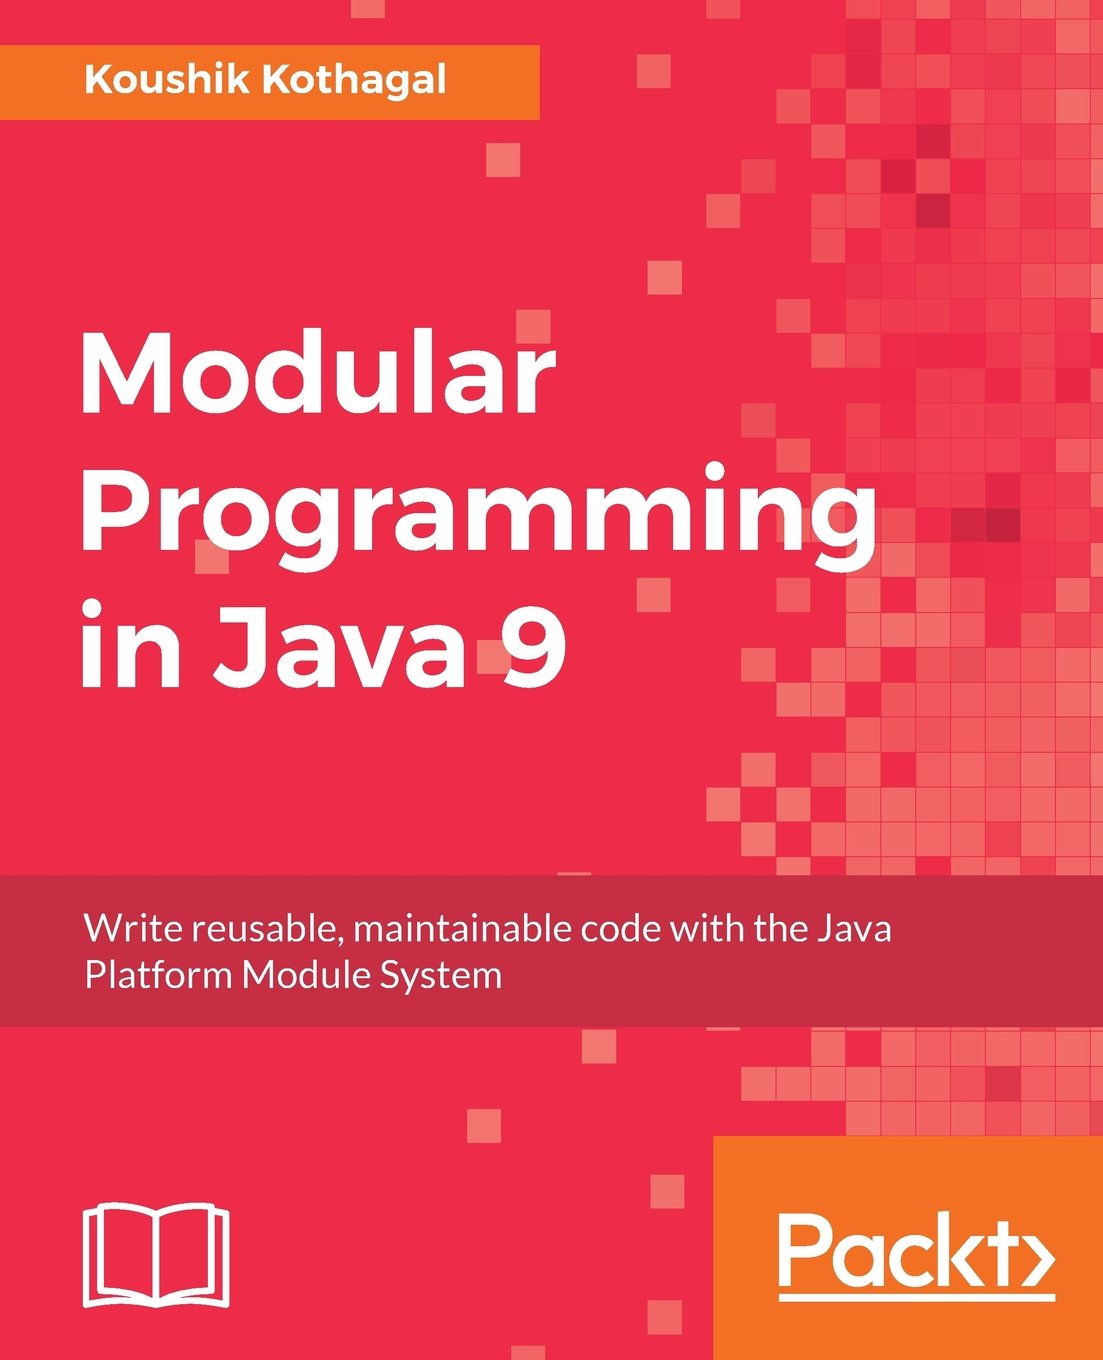 Modular Programming in Java 9: Induce modularity and write maintainable code with Project Jigsaw